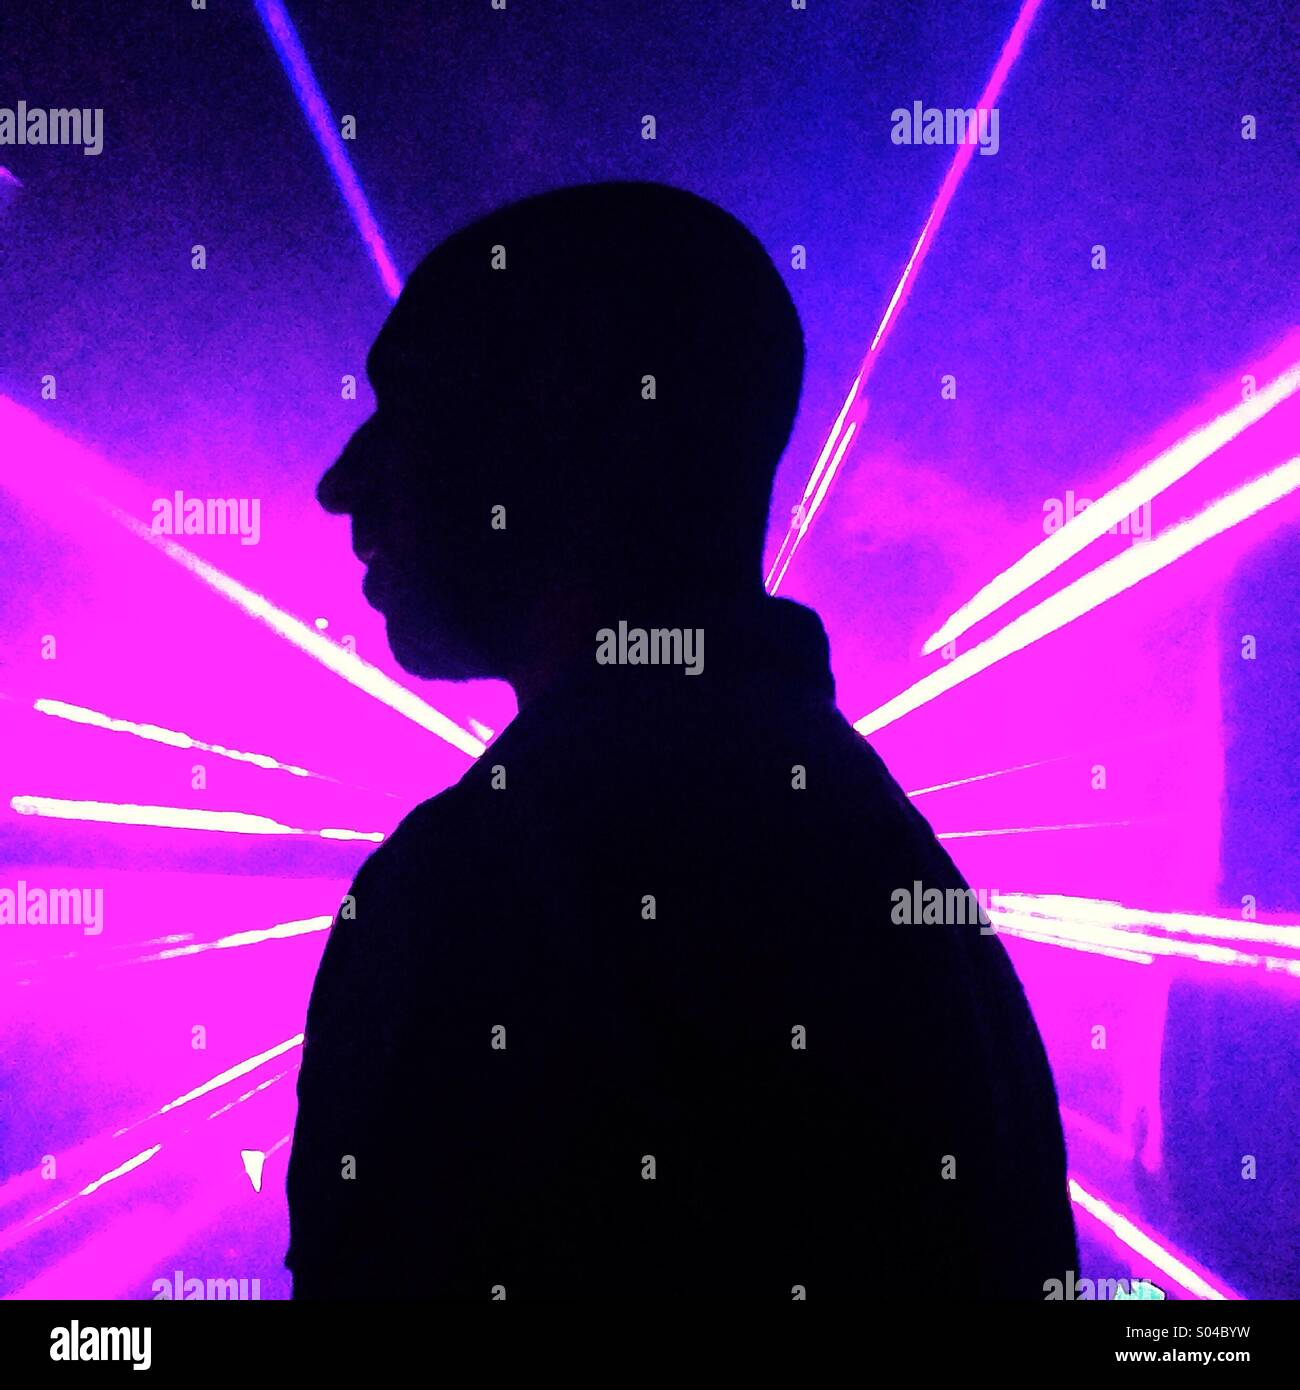 Man silhouetted in purple pink laser in nightclub - Stock Image